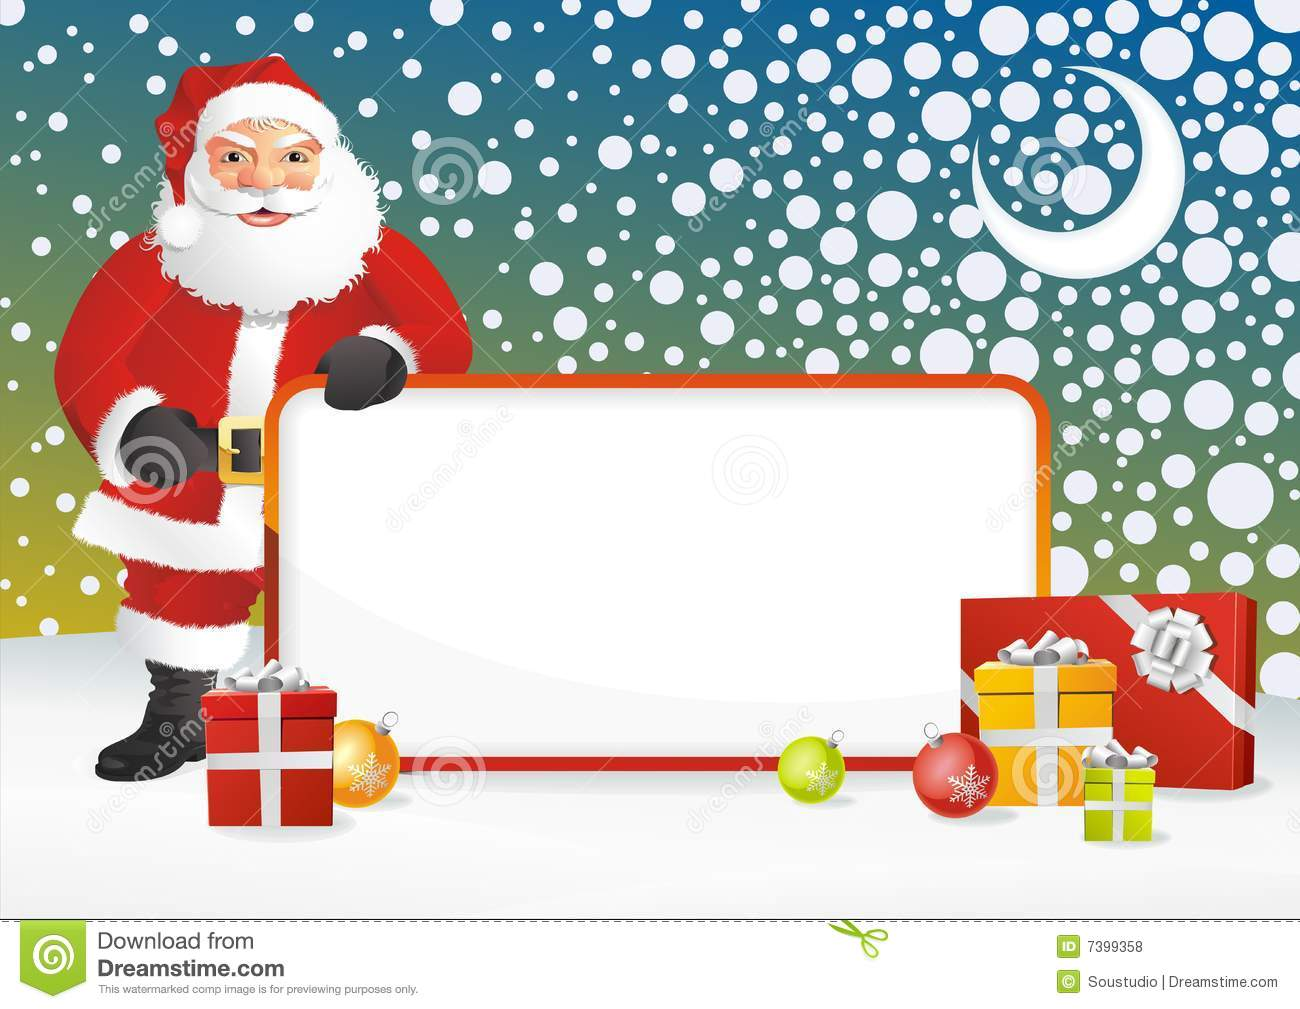 Santa Claus Frame Stock Vector Illustration Of Holiday 7399358